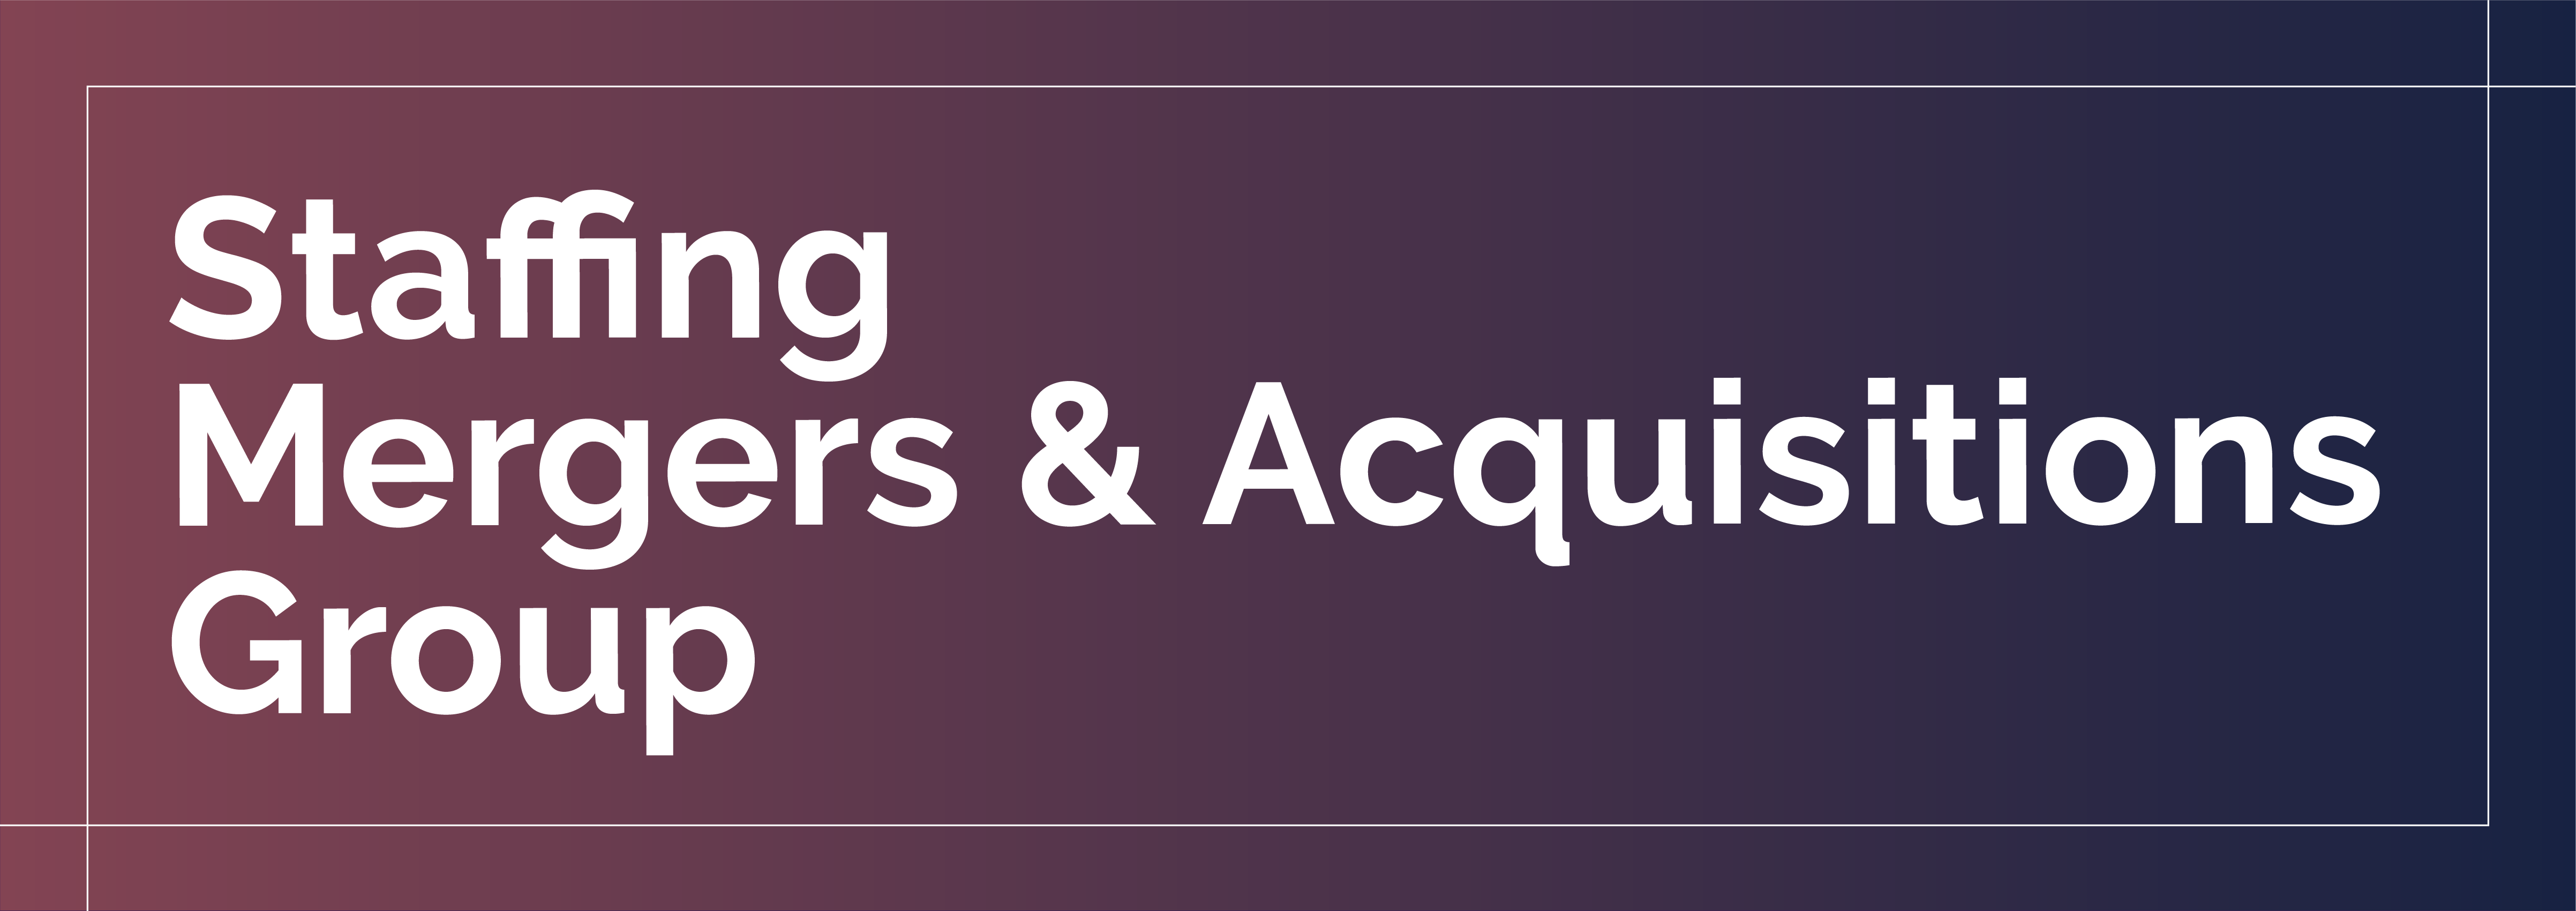 smag,staffing,mergers,acquisitions,group